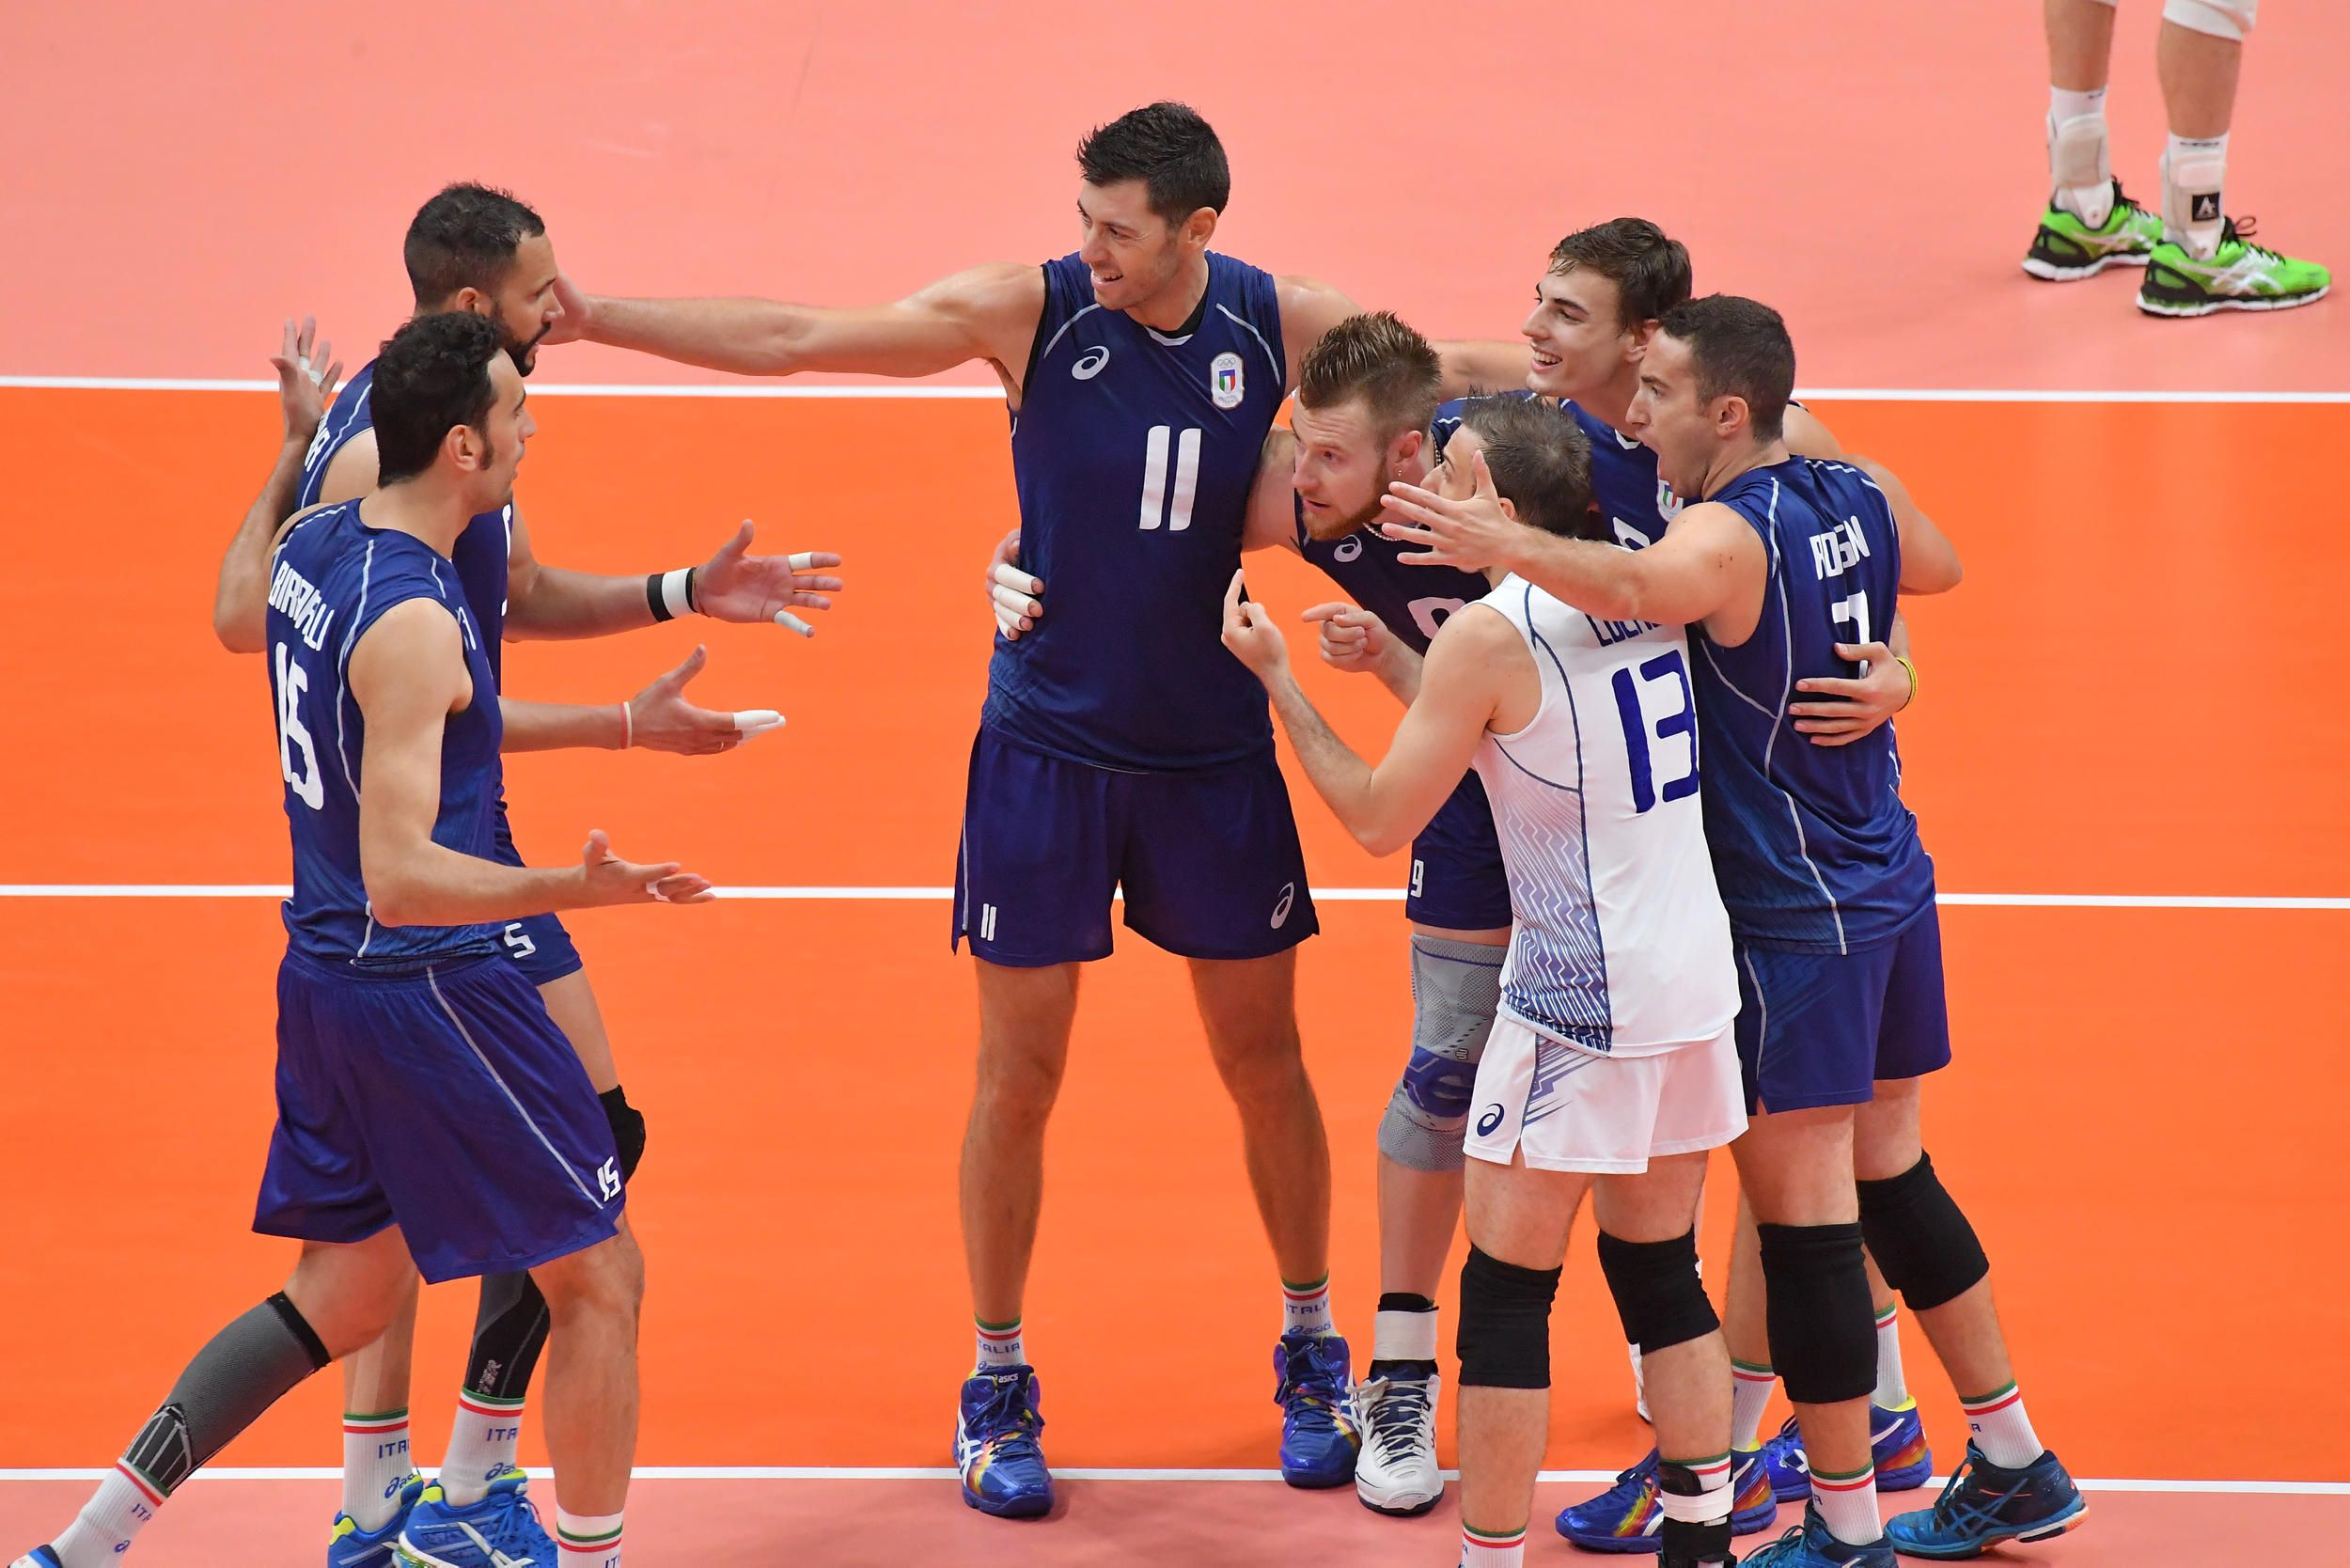 Team Italy Celebrate A Point Against Brazil Final In 2020 Volleyball Team Volleyball Teams